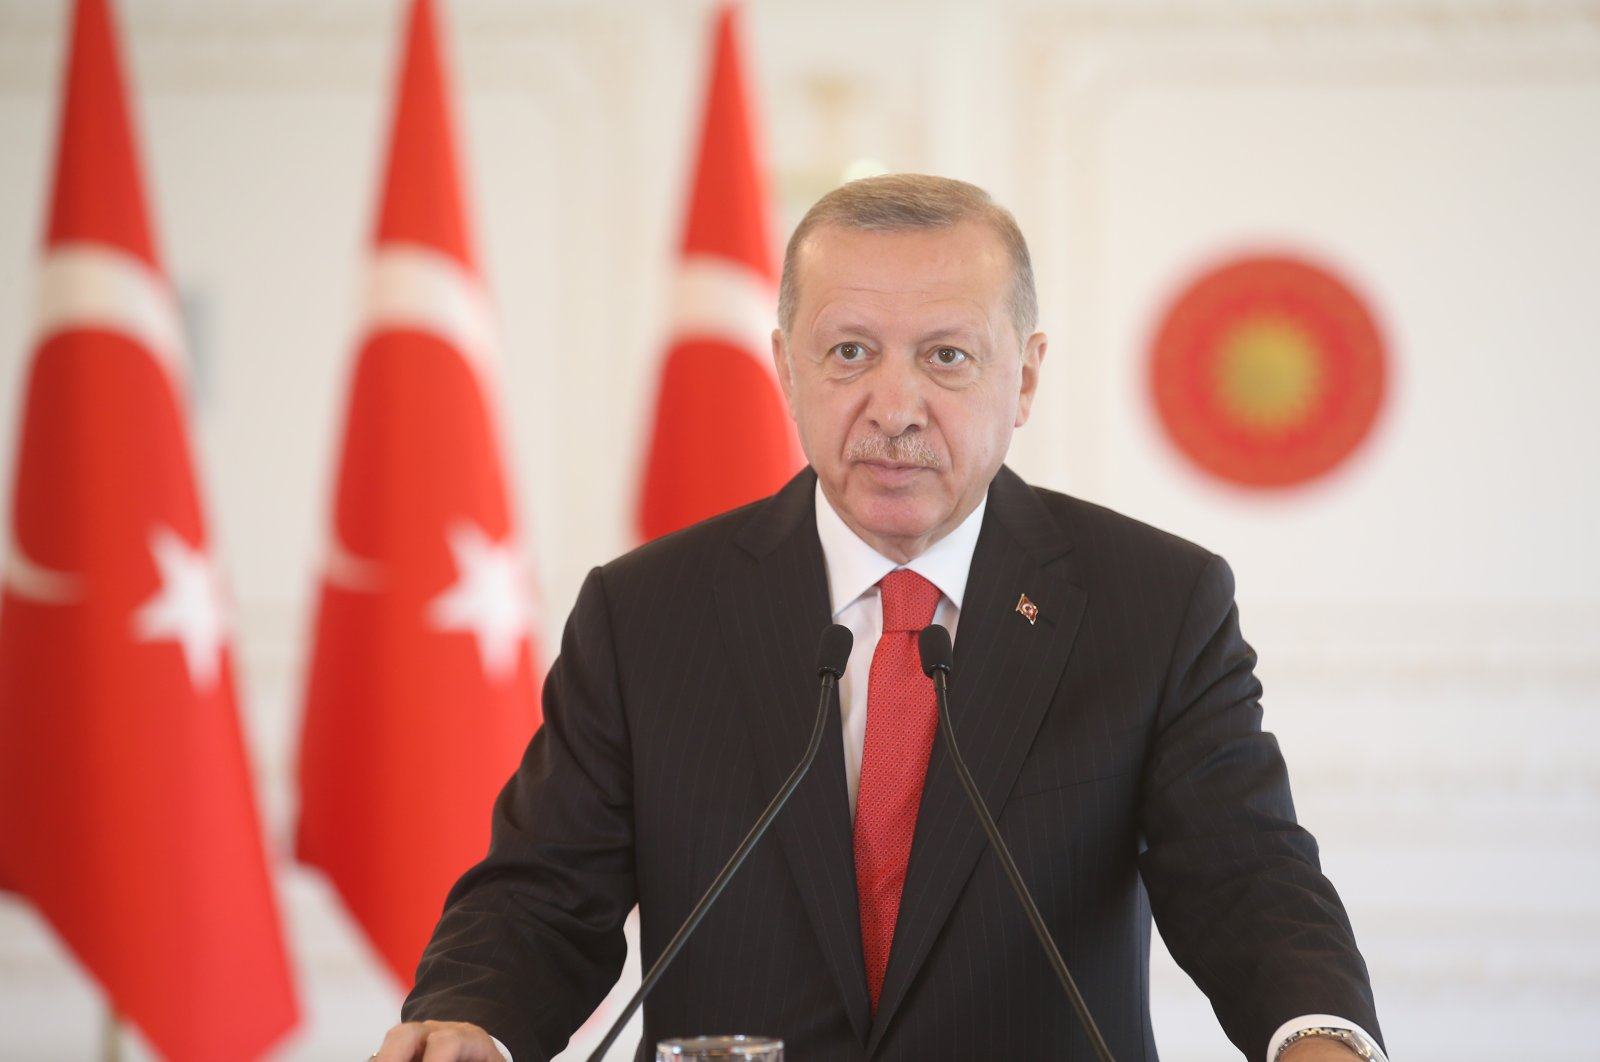 President Recep Tayyip Erdoğan speaks via video link during a mass launching ceremony of hydroelectric power plants, Istanbul, Turkey, July 5, 2020. (IHA Photo)